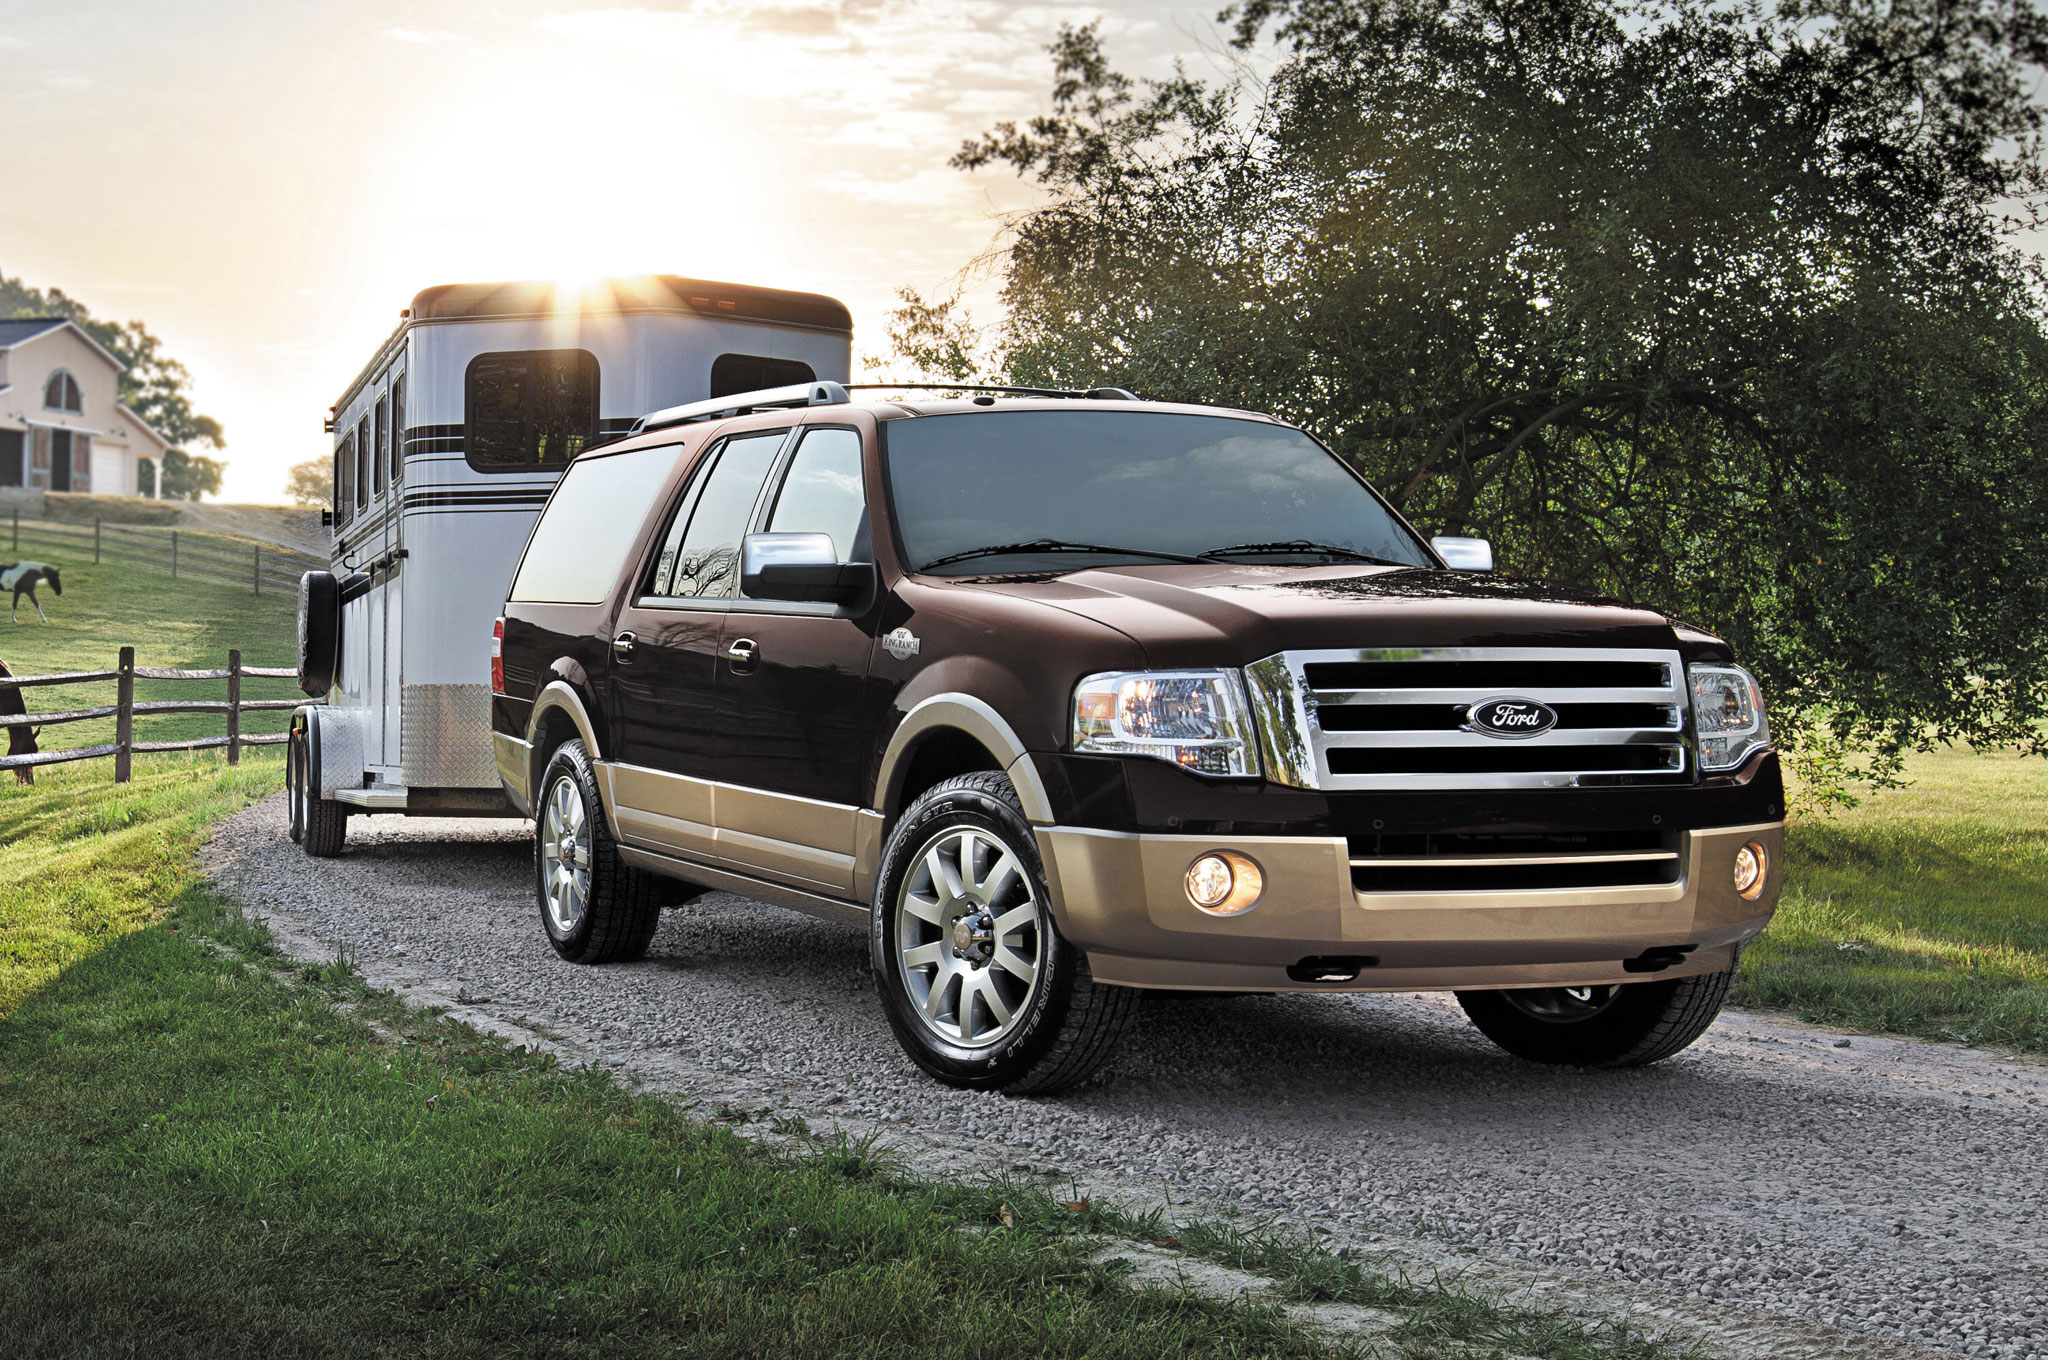 Ford Expedition 2014 #9